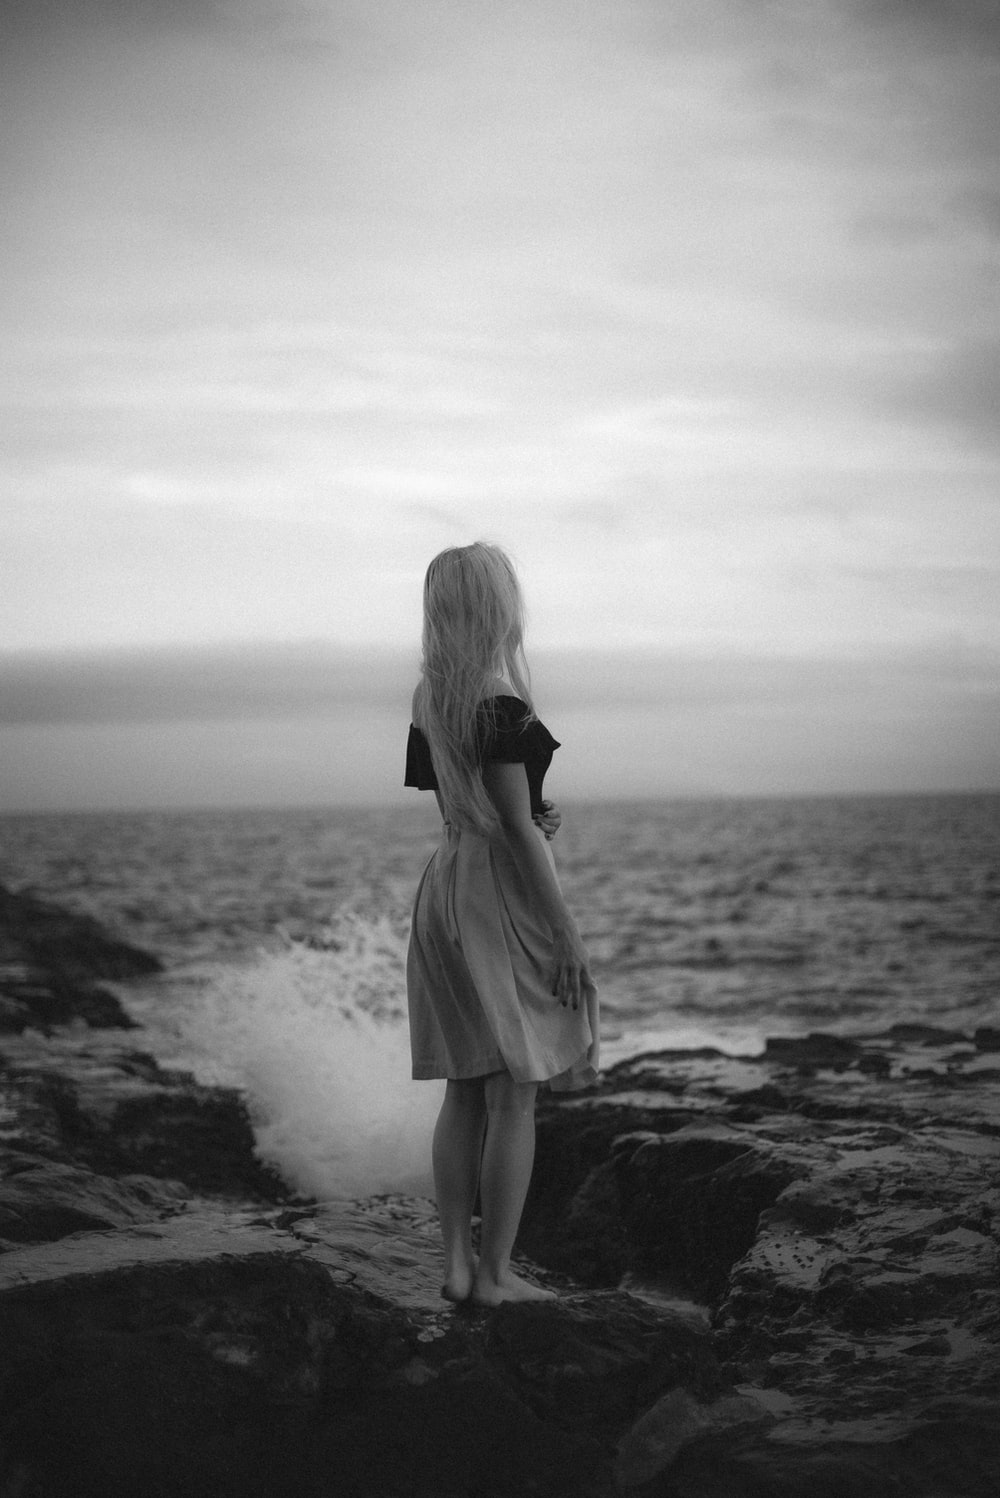 grayscale photo of woman in dress standing on beach